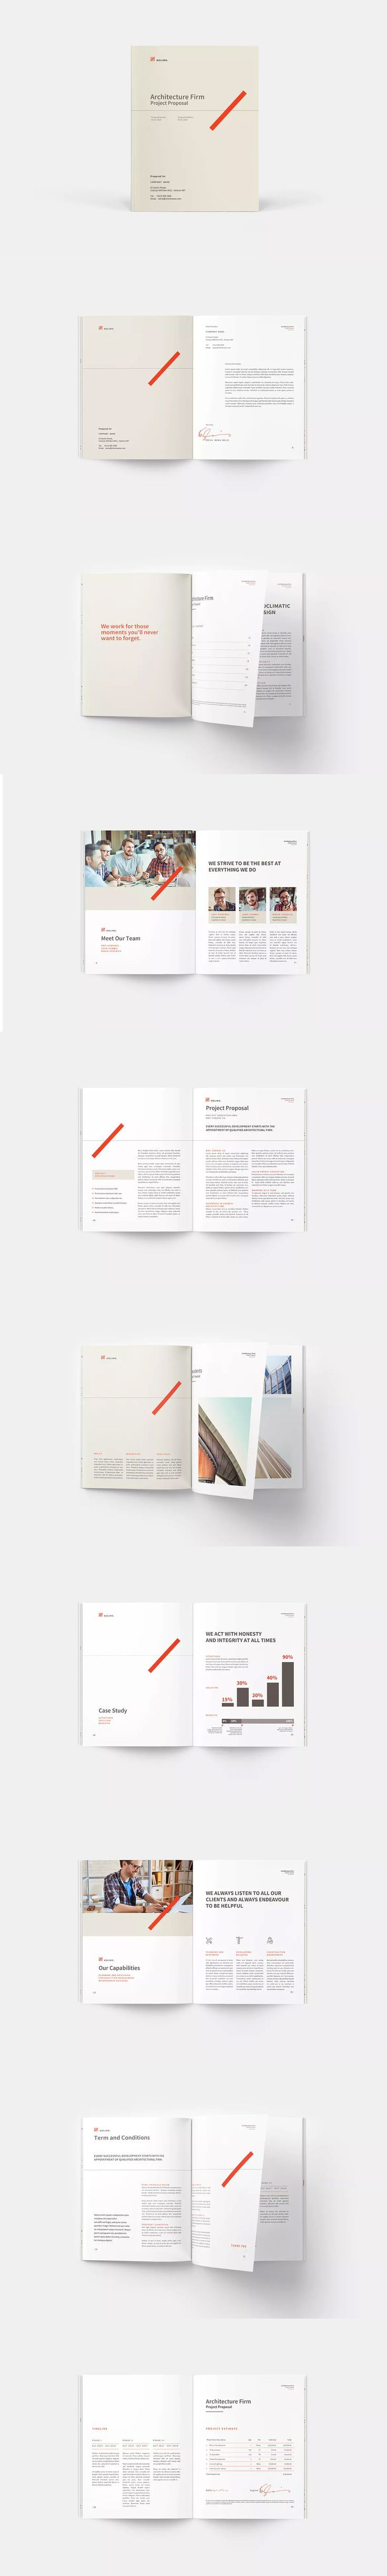 Architecture Proposal Template Indesign Indd A4 Letter Size